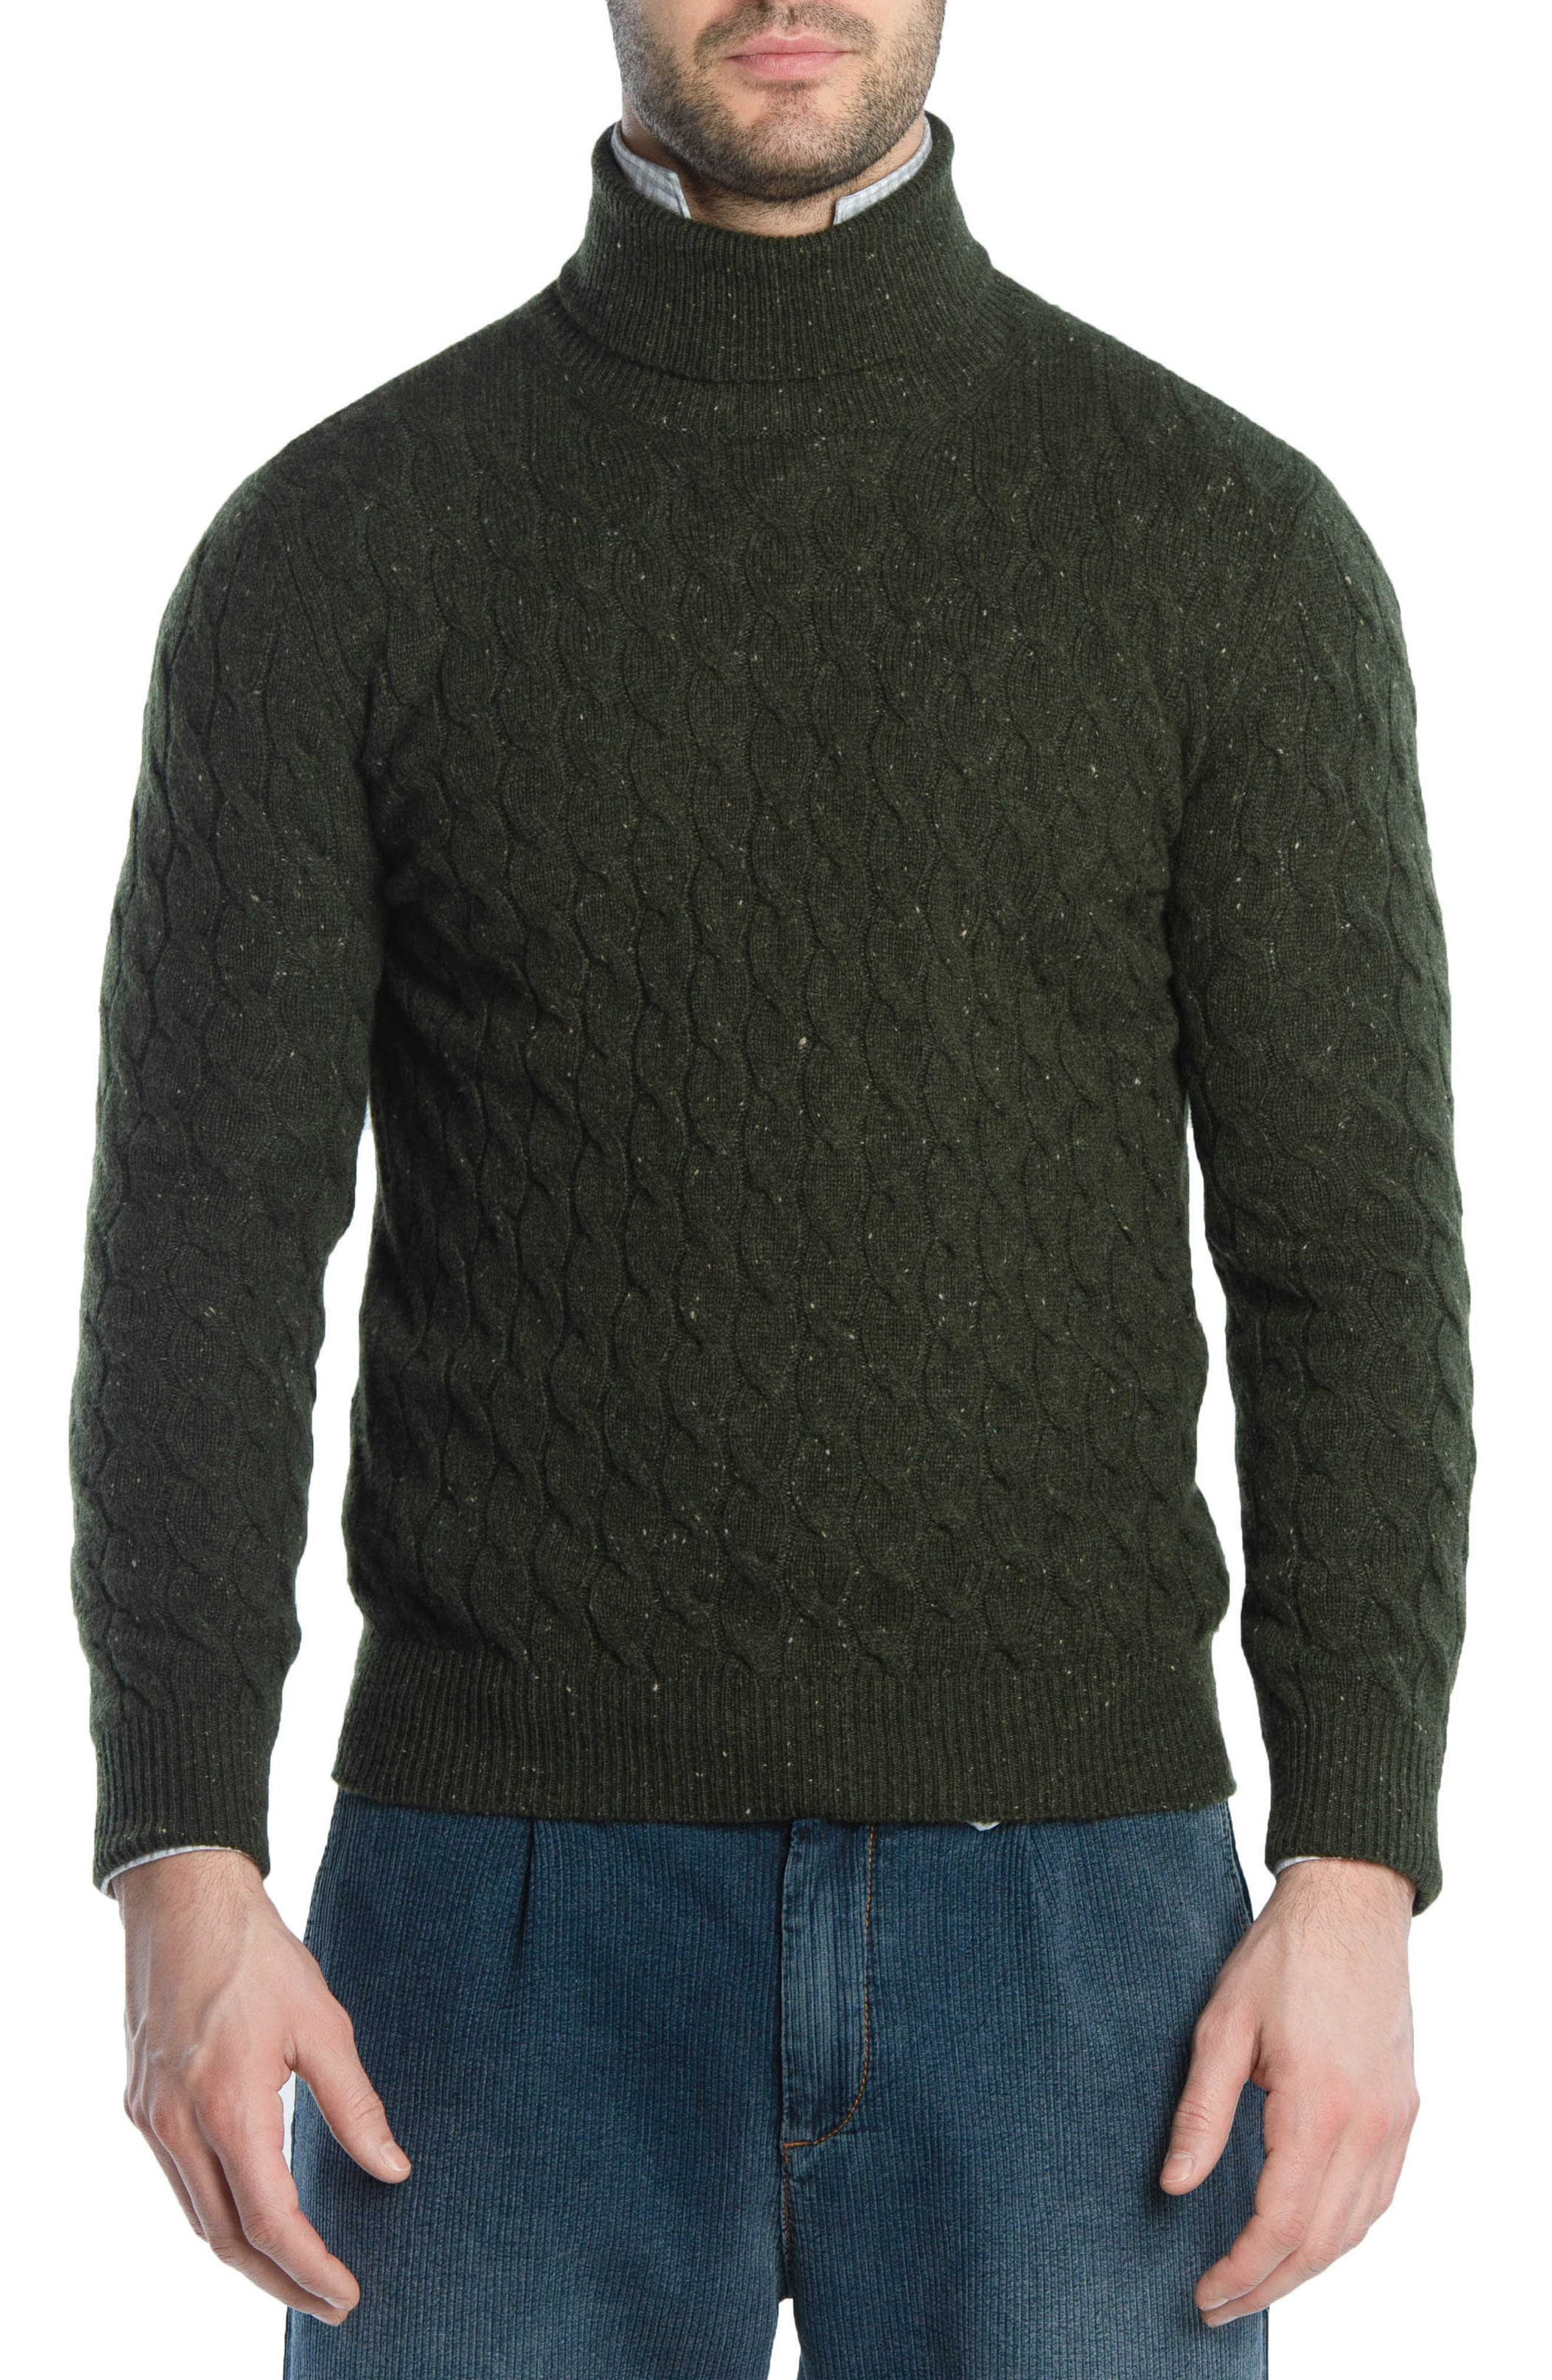 Cableknit Turtleneck Cashmere Sweater,                         Main,                         color, GREEN